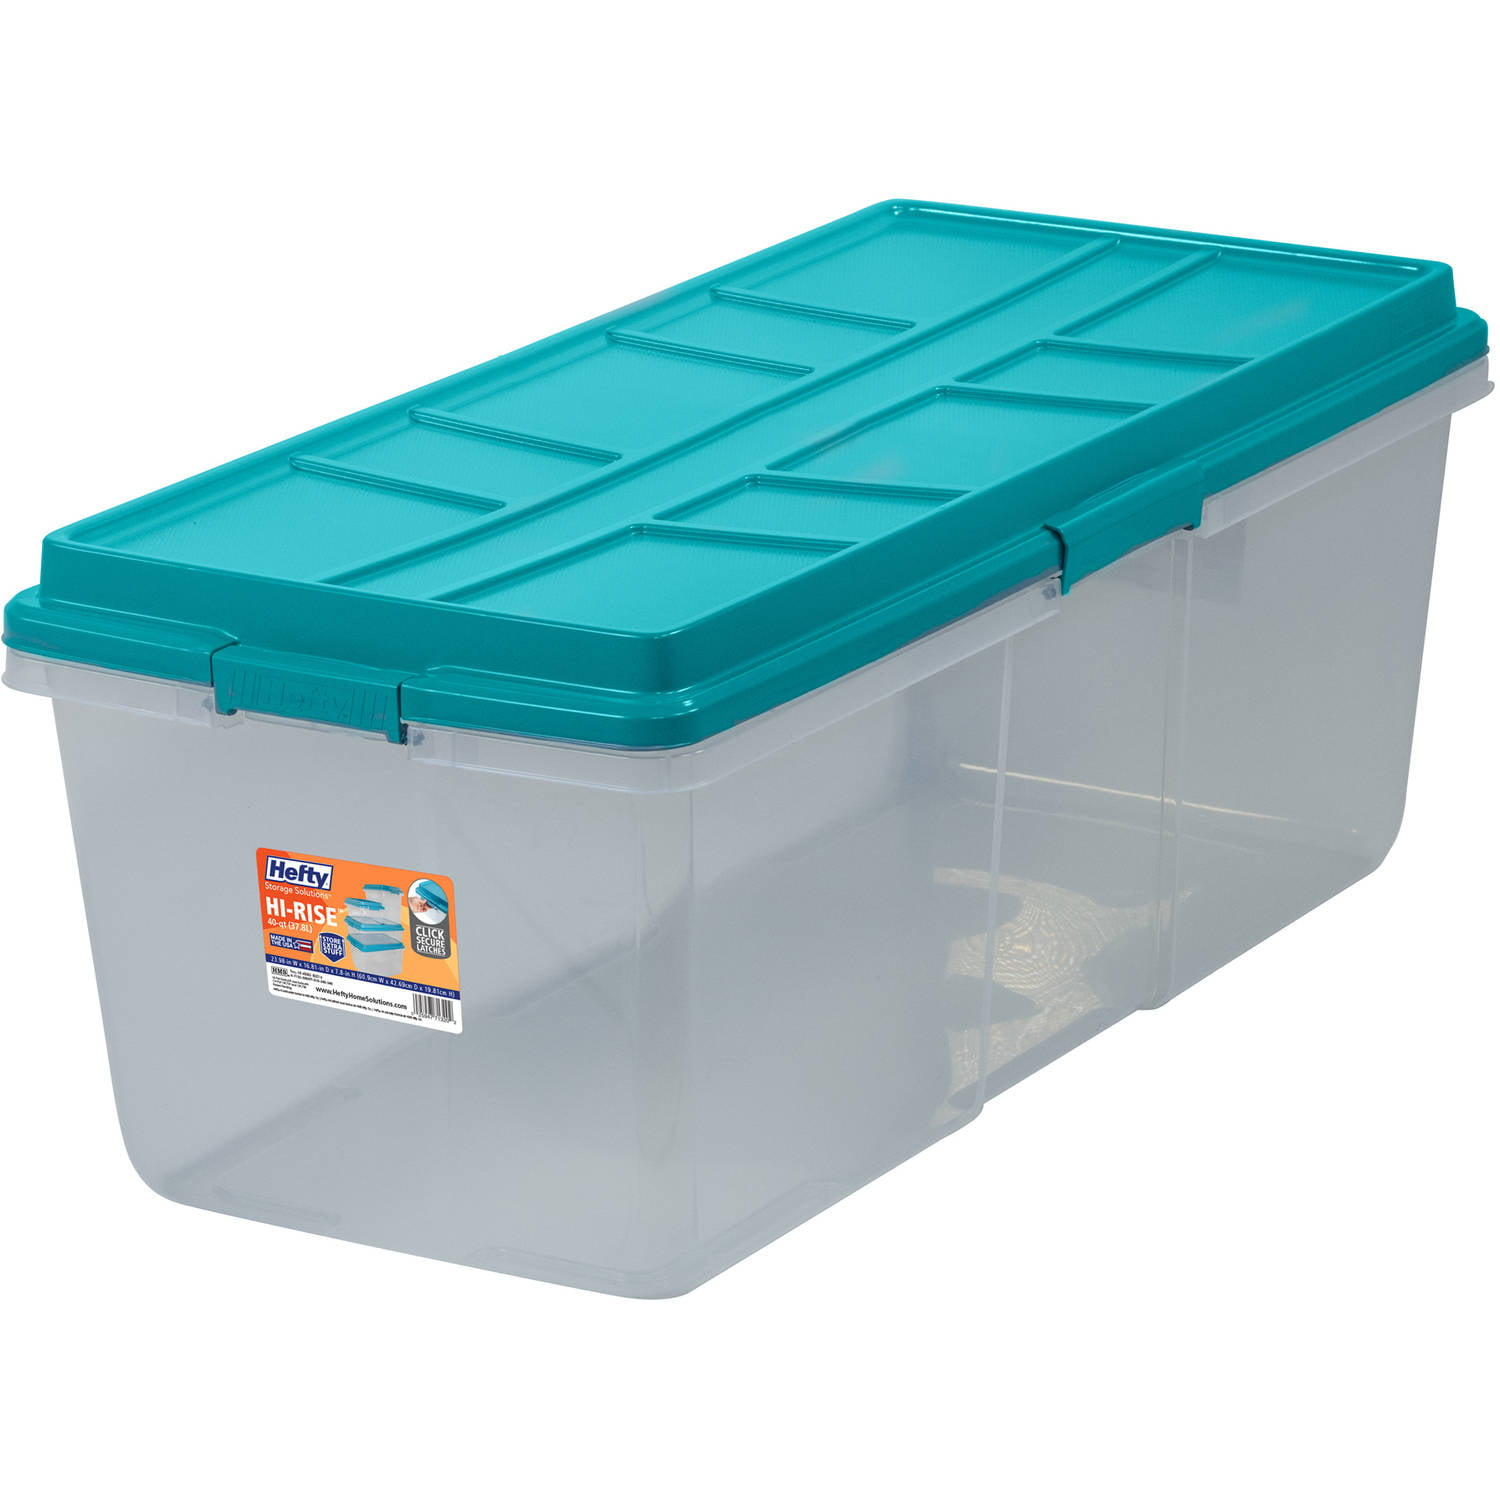 Ordinaire HI RISE Storage Bins, 113 Qt. XL Stackable Bin With Latch, Teal/Clear New